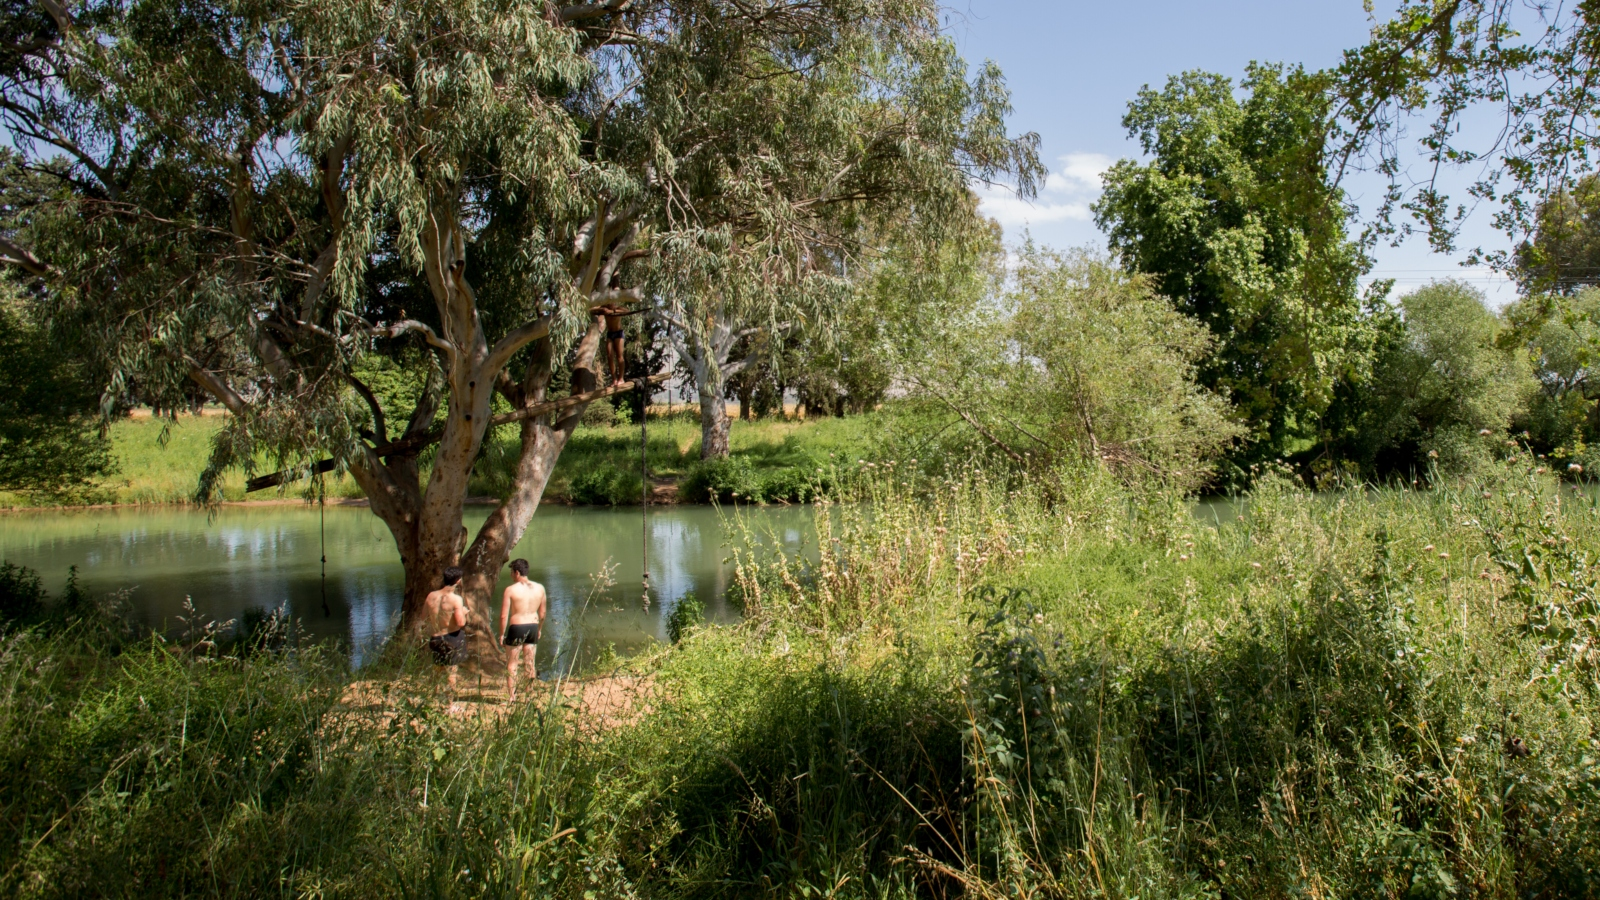 Gather participants can spend their lunch hour enjoying the natural surroundings of a kibbutz. Photo by Almog Gurevich